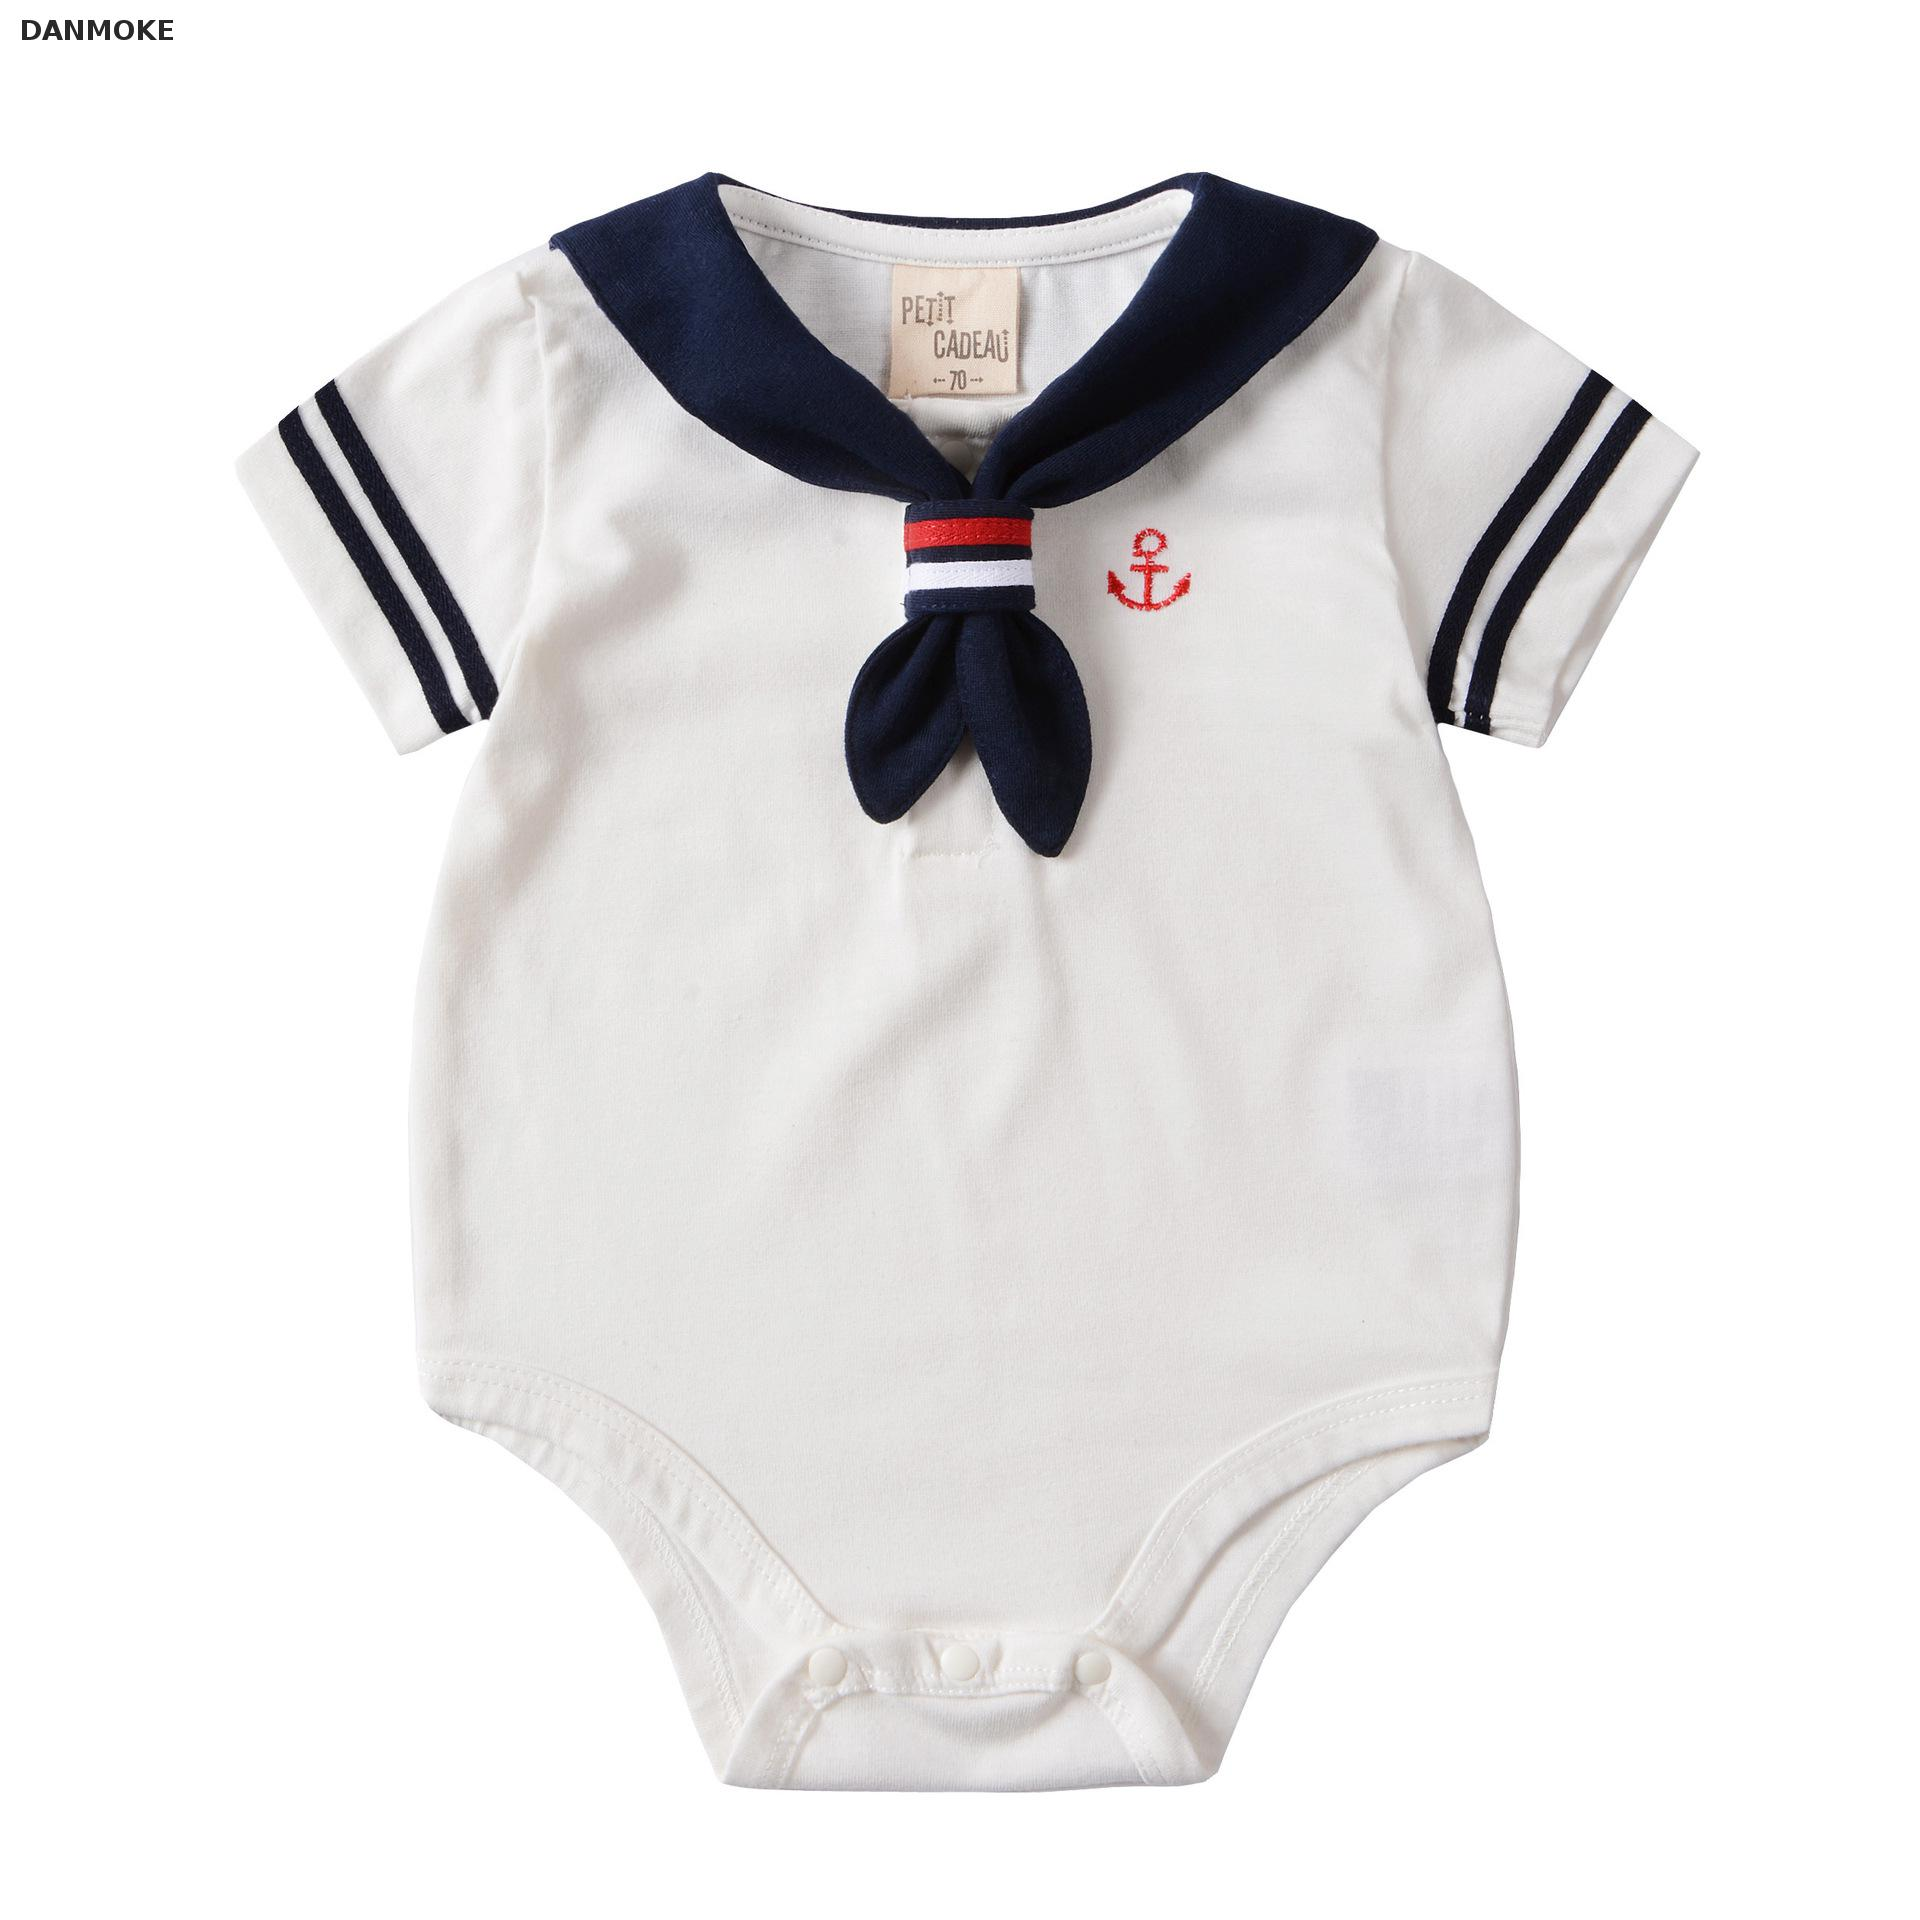 Danmoke 2017 Baby Clothes White Navy Sailor Uniforms Summer Baby Rompers Short Sleeve One-pieces Jumpsuit Baby Boy Girl Clothing 2016 summer short sleeve baby boy sailor suit jumpsuit infant clothing navy newborn baby rompers